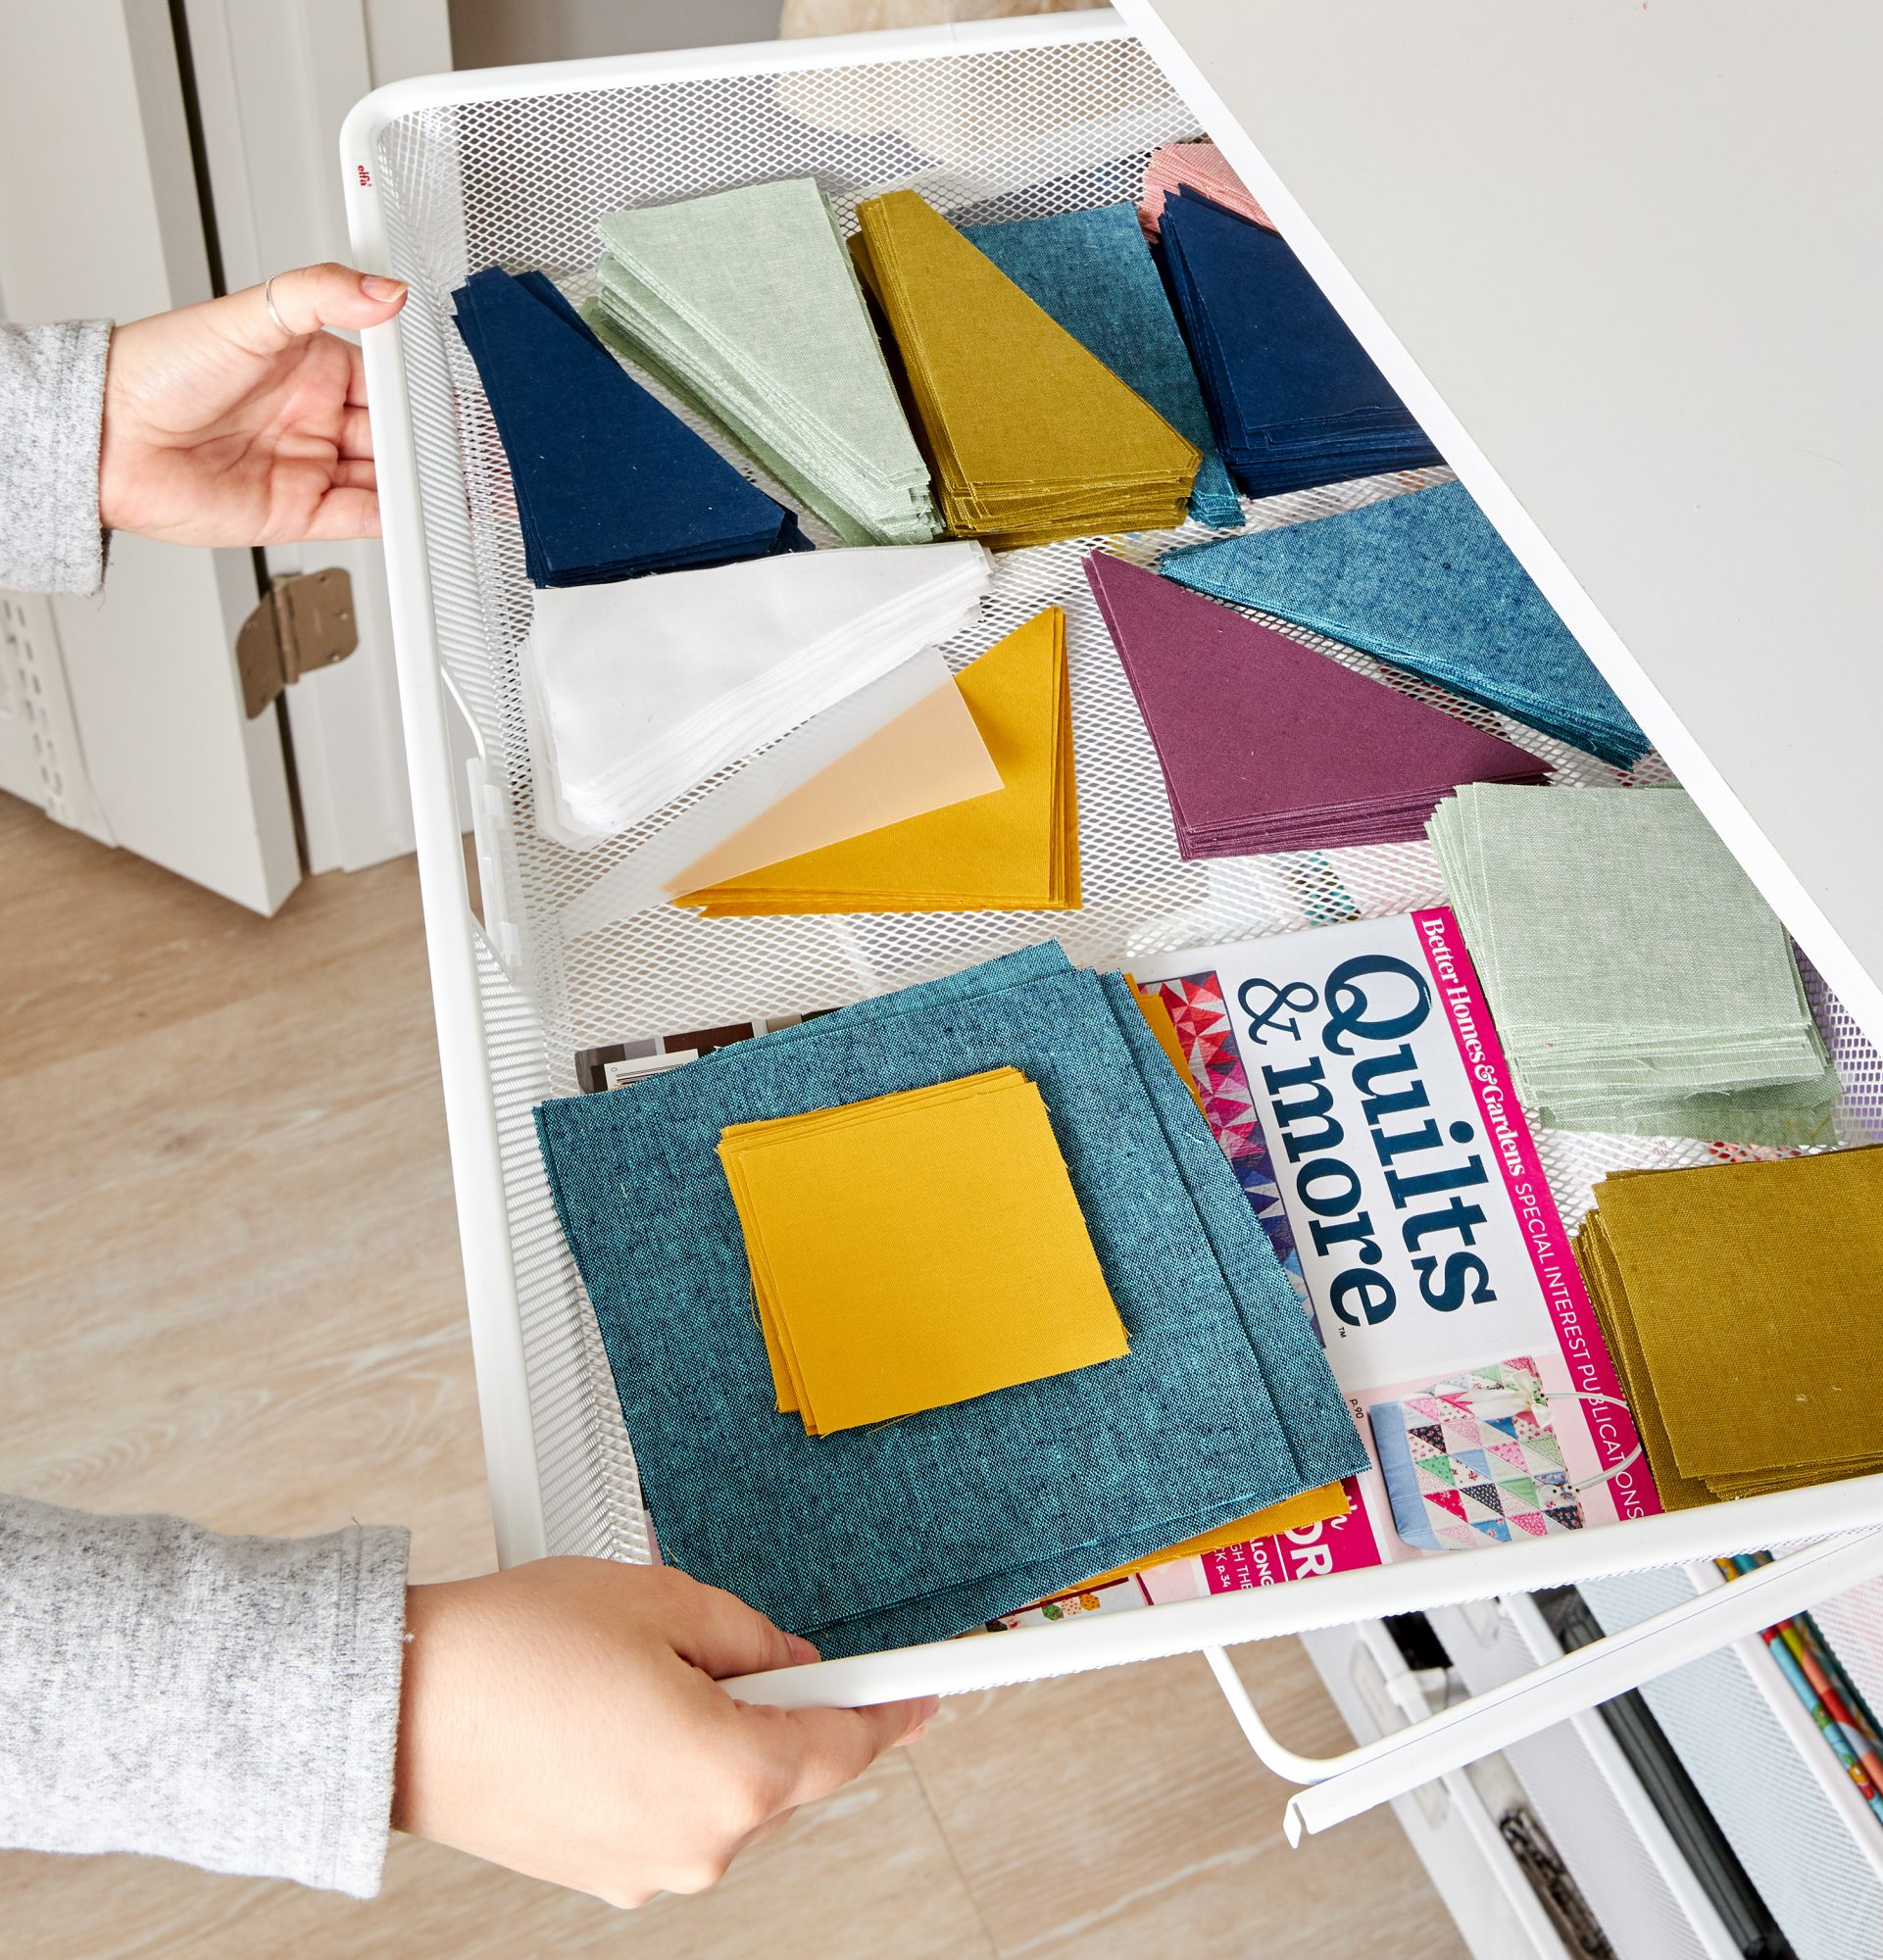 Use trays or pullout drawers to store in-progress projects. They allow you to keep all pieces and tools for a project organized and available and are easy to move from storage to work space.